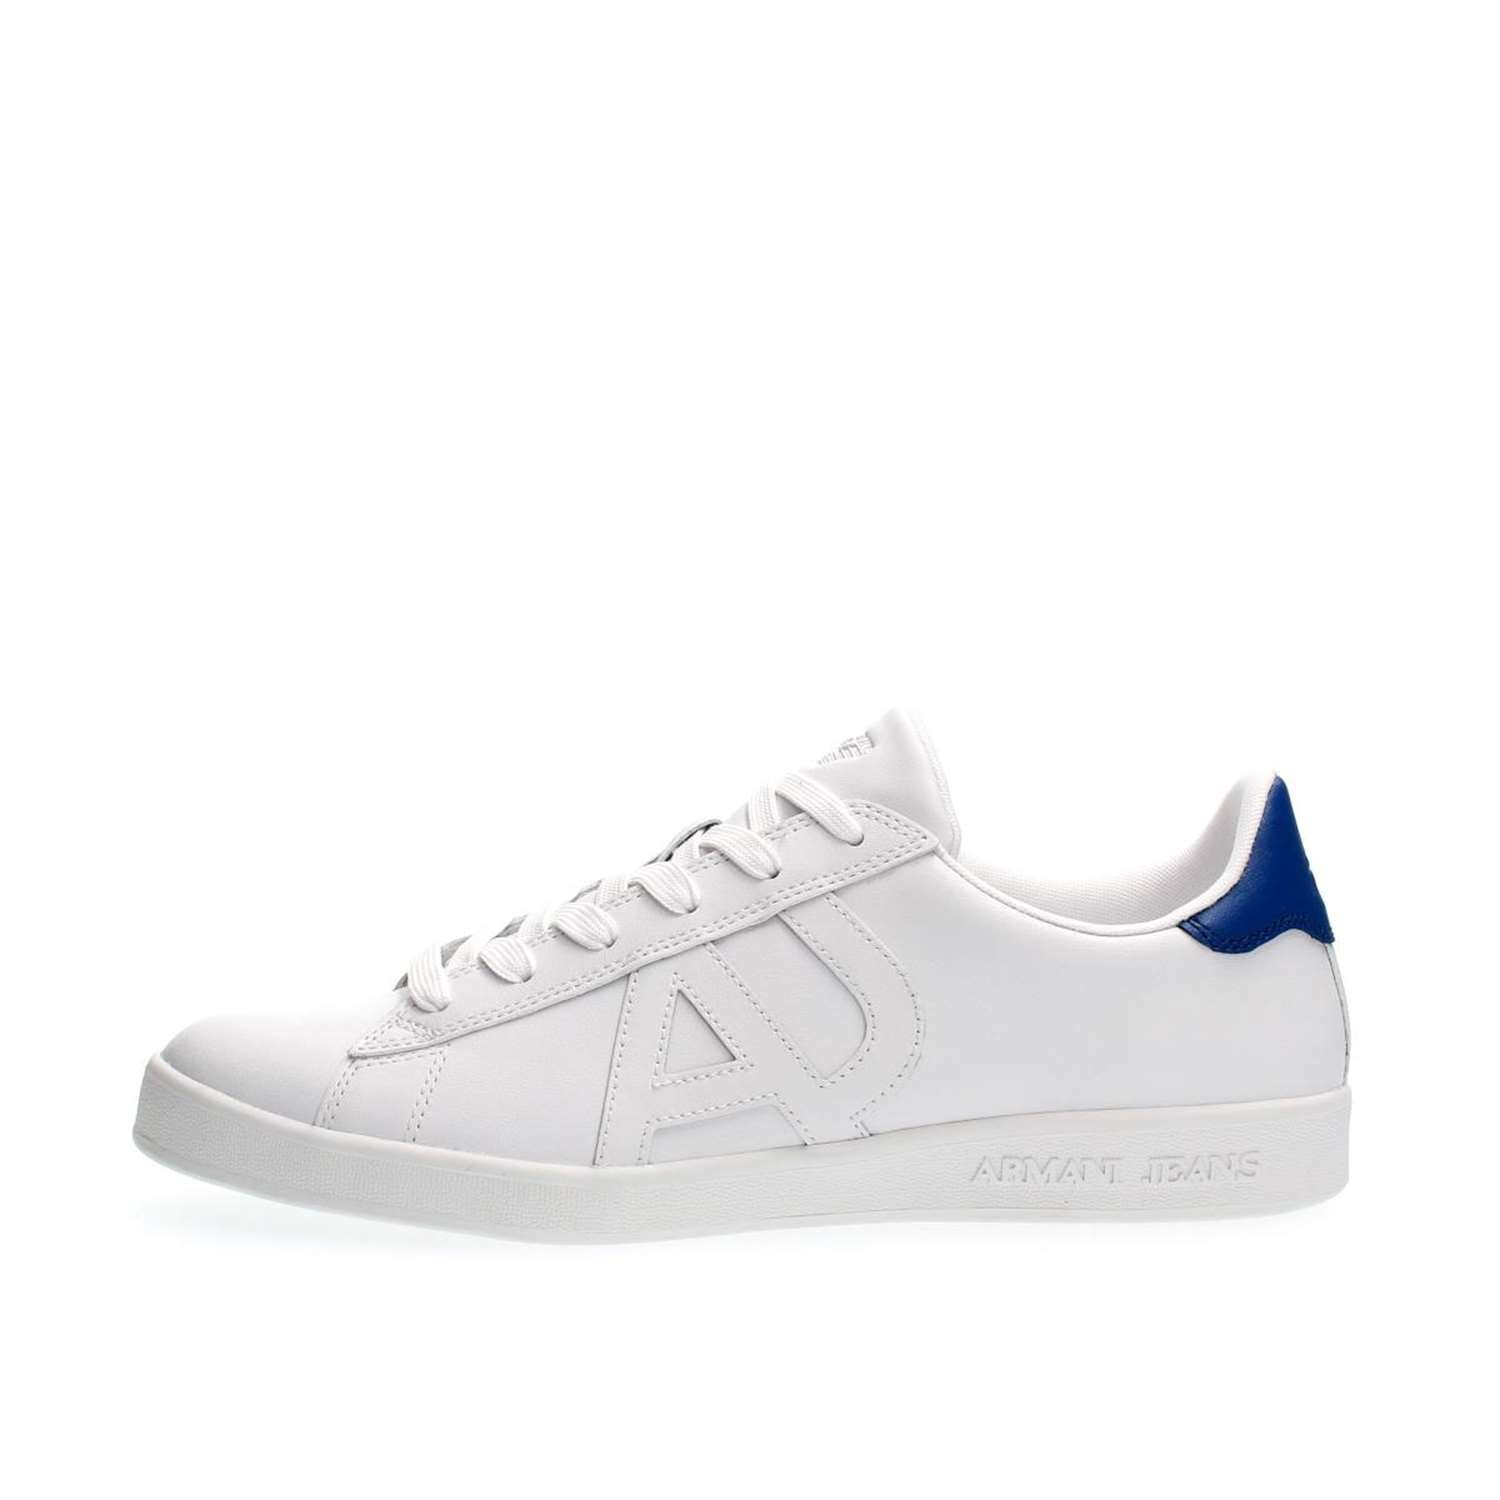 b994971733b Armani Jeans Knit Runner Trainers White 6 UK  Amazon.co.uk  Shoes   Bags